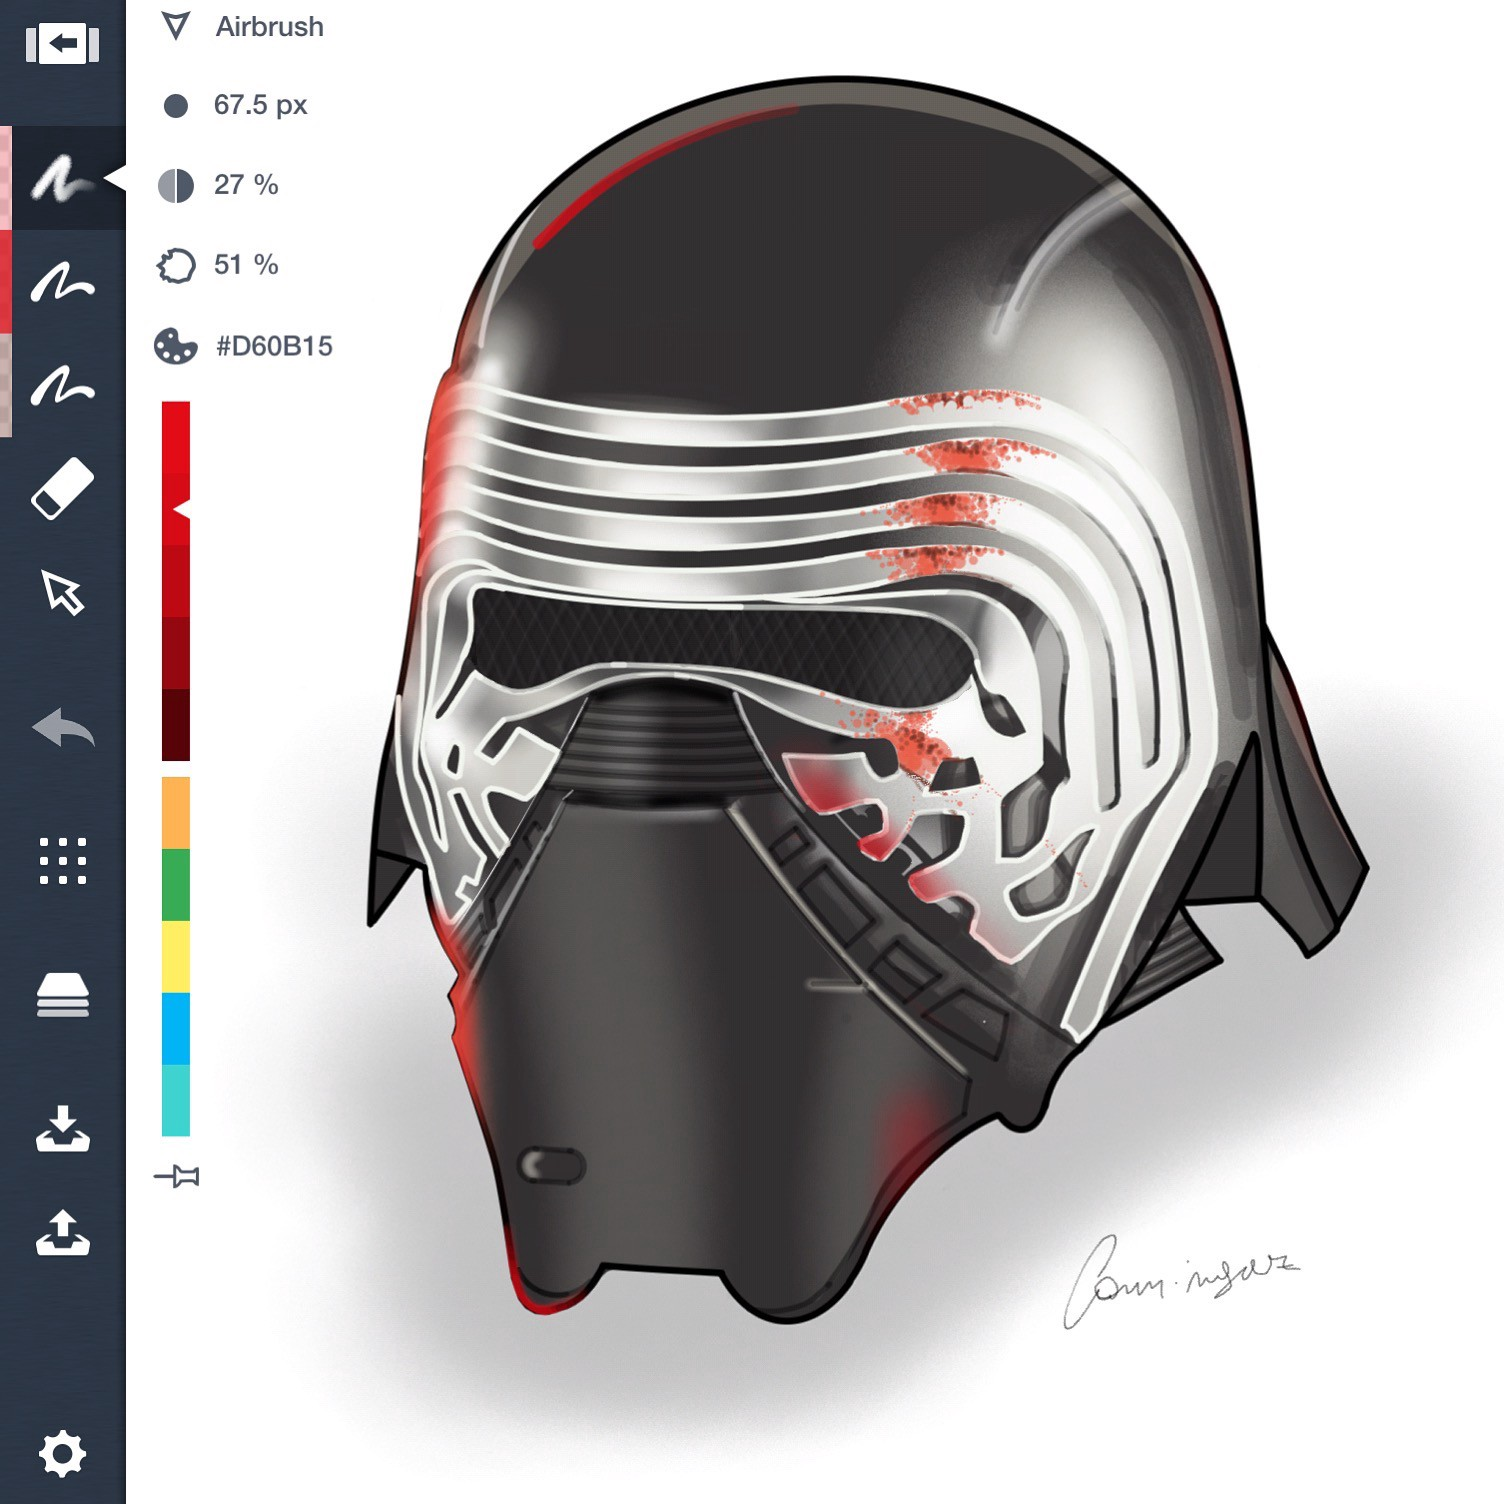 How to create photorealistic graphics concepts app medium the rulers airbrush pencils markers and brushes help me to project a drawing before starting i imagine how to achieve each effect solutioingenieria Choice Image